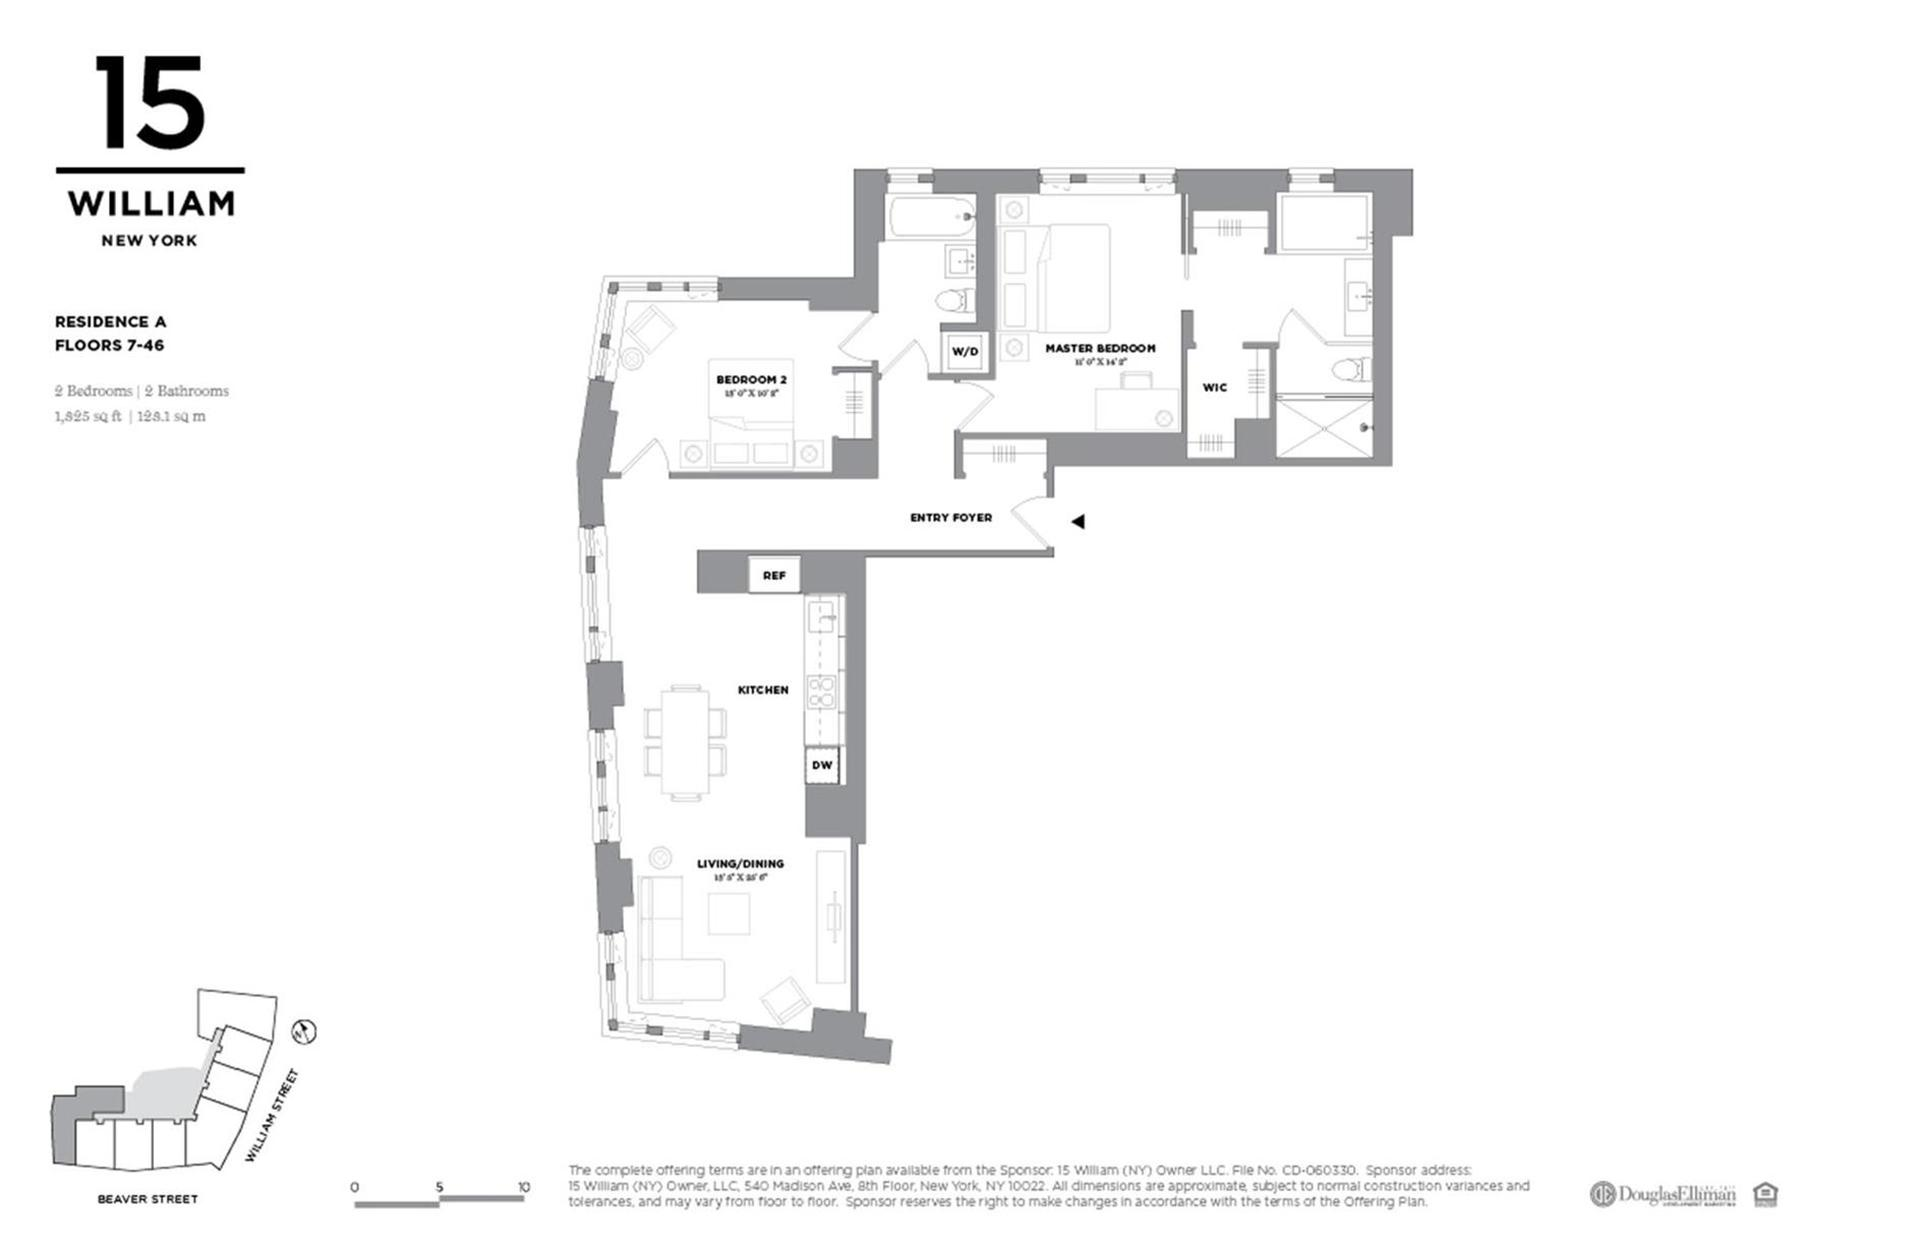 Floor plan of 15 William, 15 William St, 25A - Financial District, New York